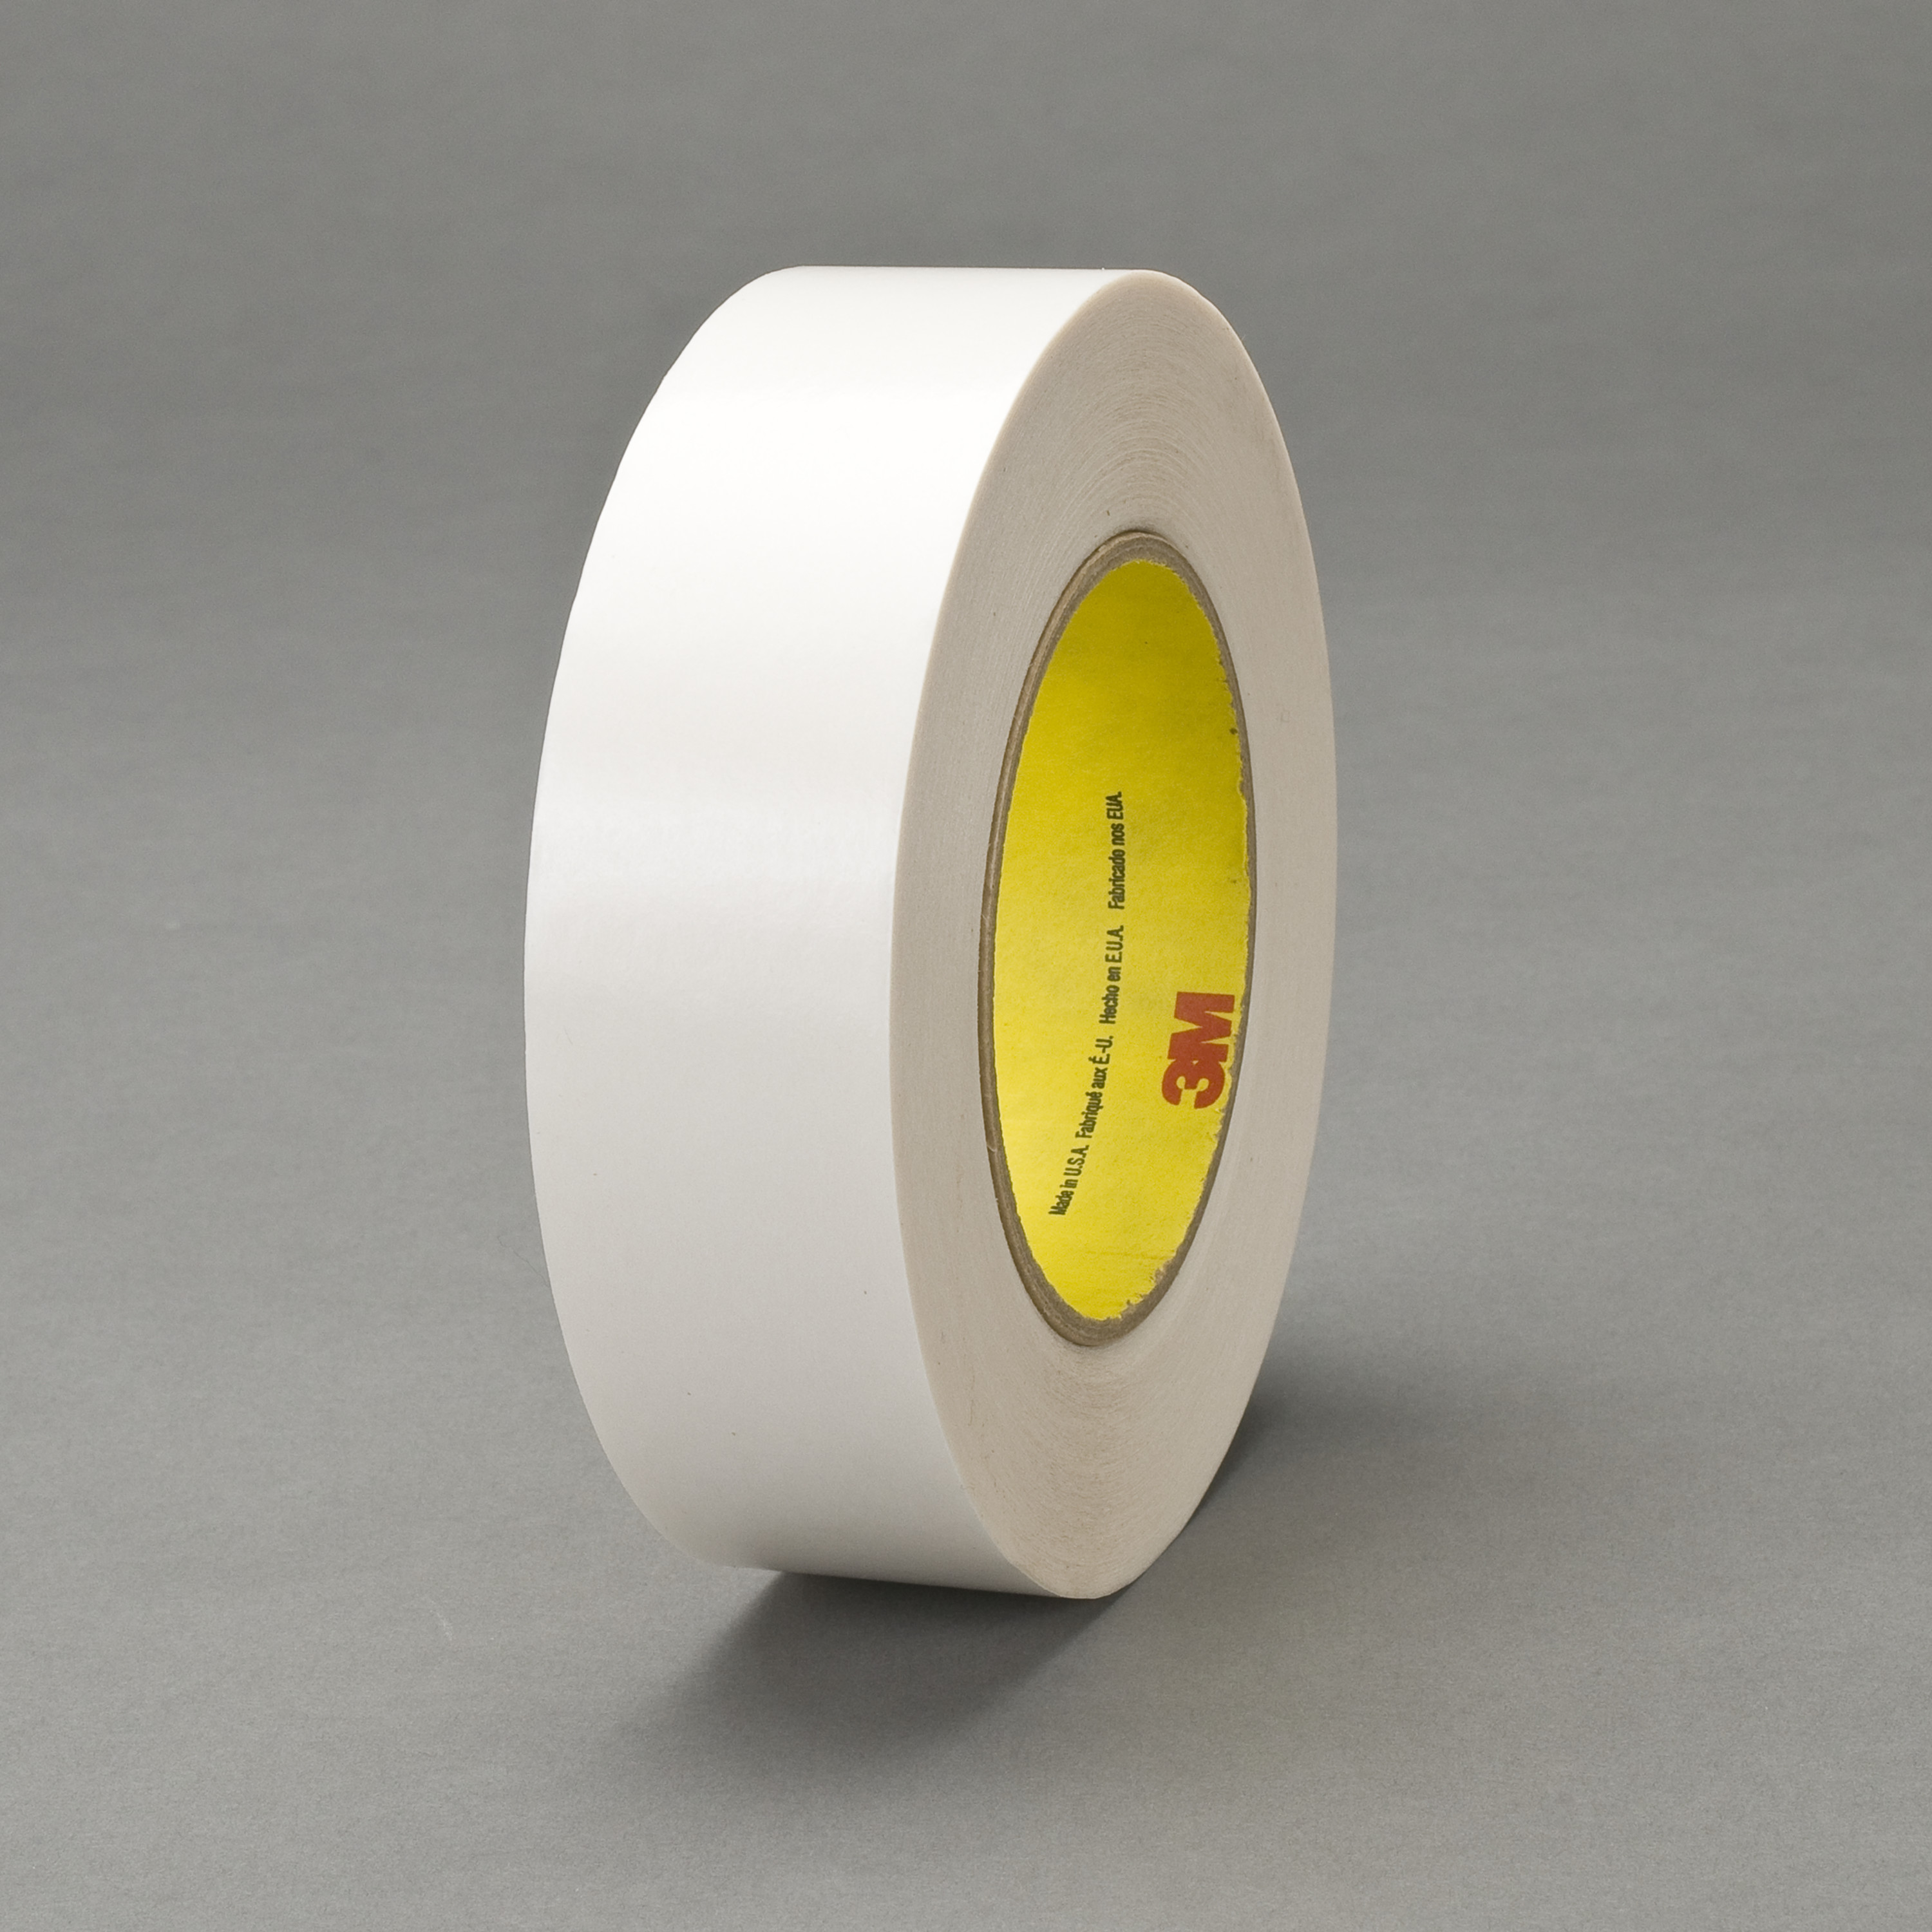 3M™ Double Coated Tape 9737, Clear, 36 mm x 55 m, 3.5 mil, 32 rolls per case